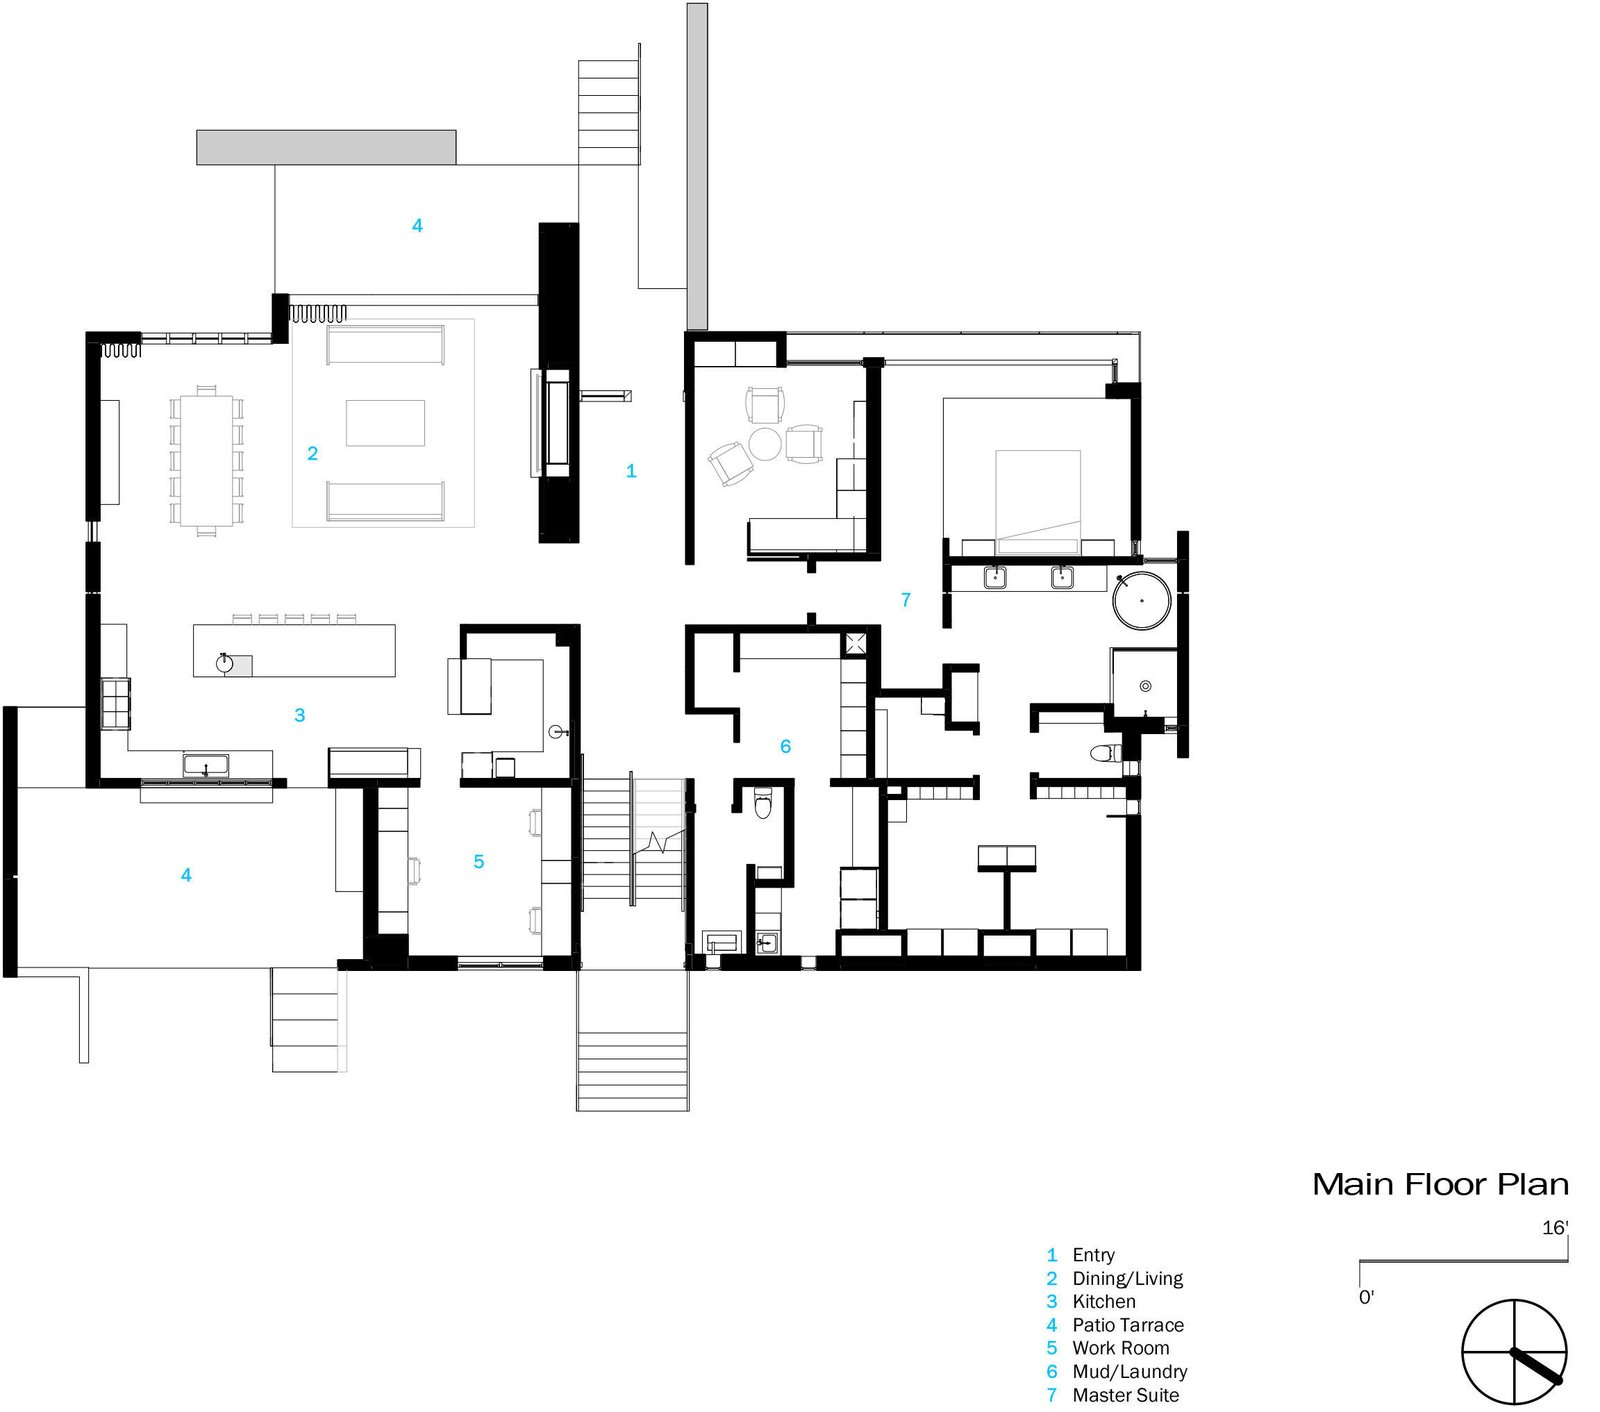 Main Floor Plan  Photo 17 of 18 in An Uplifting Lake Tahoe Retreat Uses Light as a Building Material